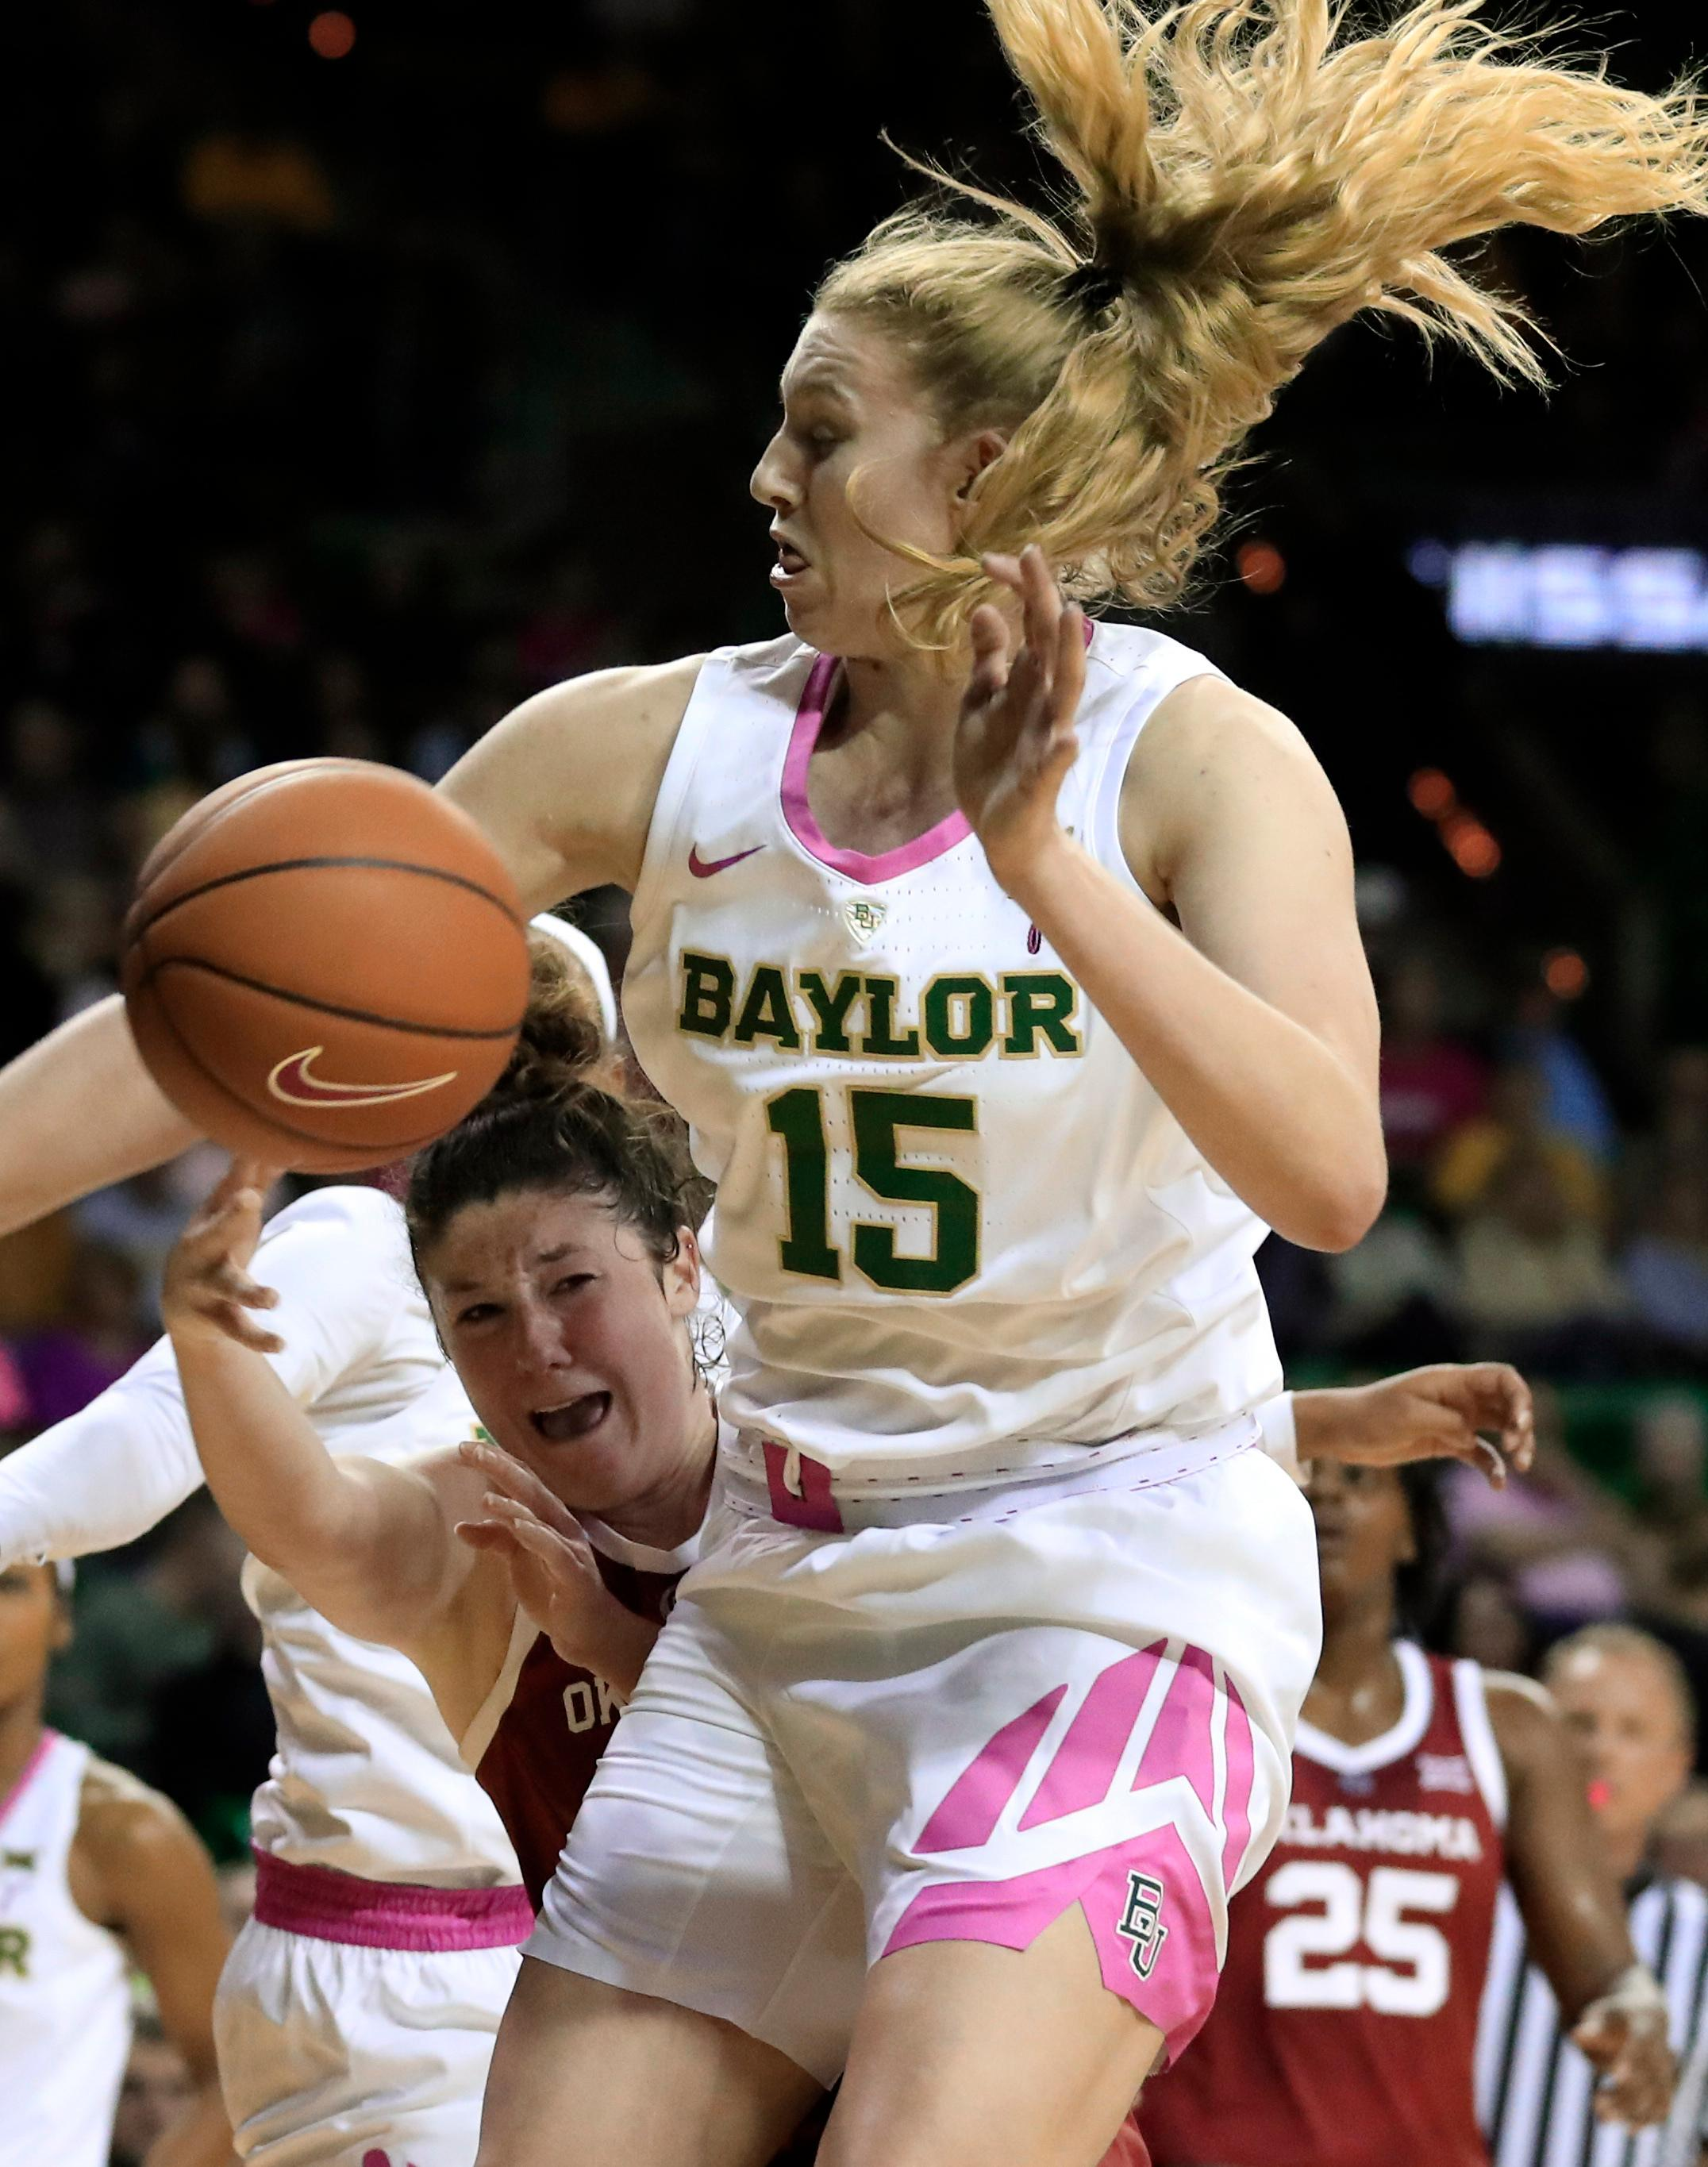 Oklahoma guard Jessi Murcer, left, passes the ball as Baylor forward Lauren Cox (15) defends during the first half of an NCAA college basketball game in Waco, Texas, Saturday, Feb. 16, 2019. (AP Photo/Tony Gutierrez)